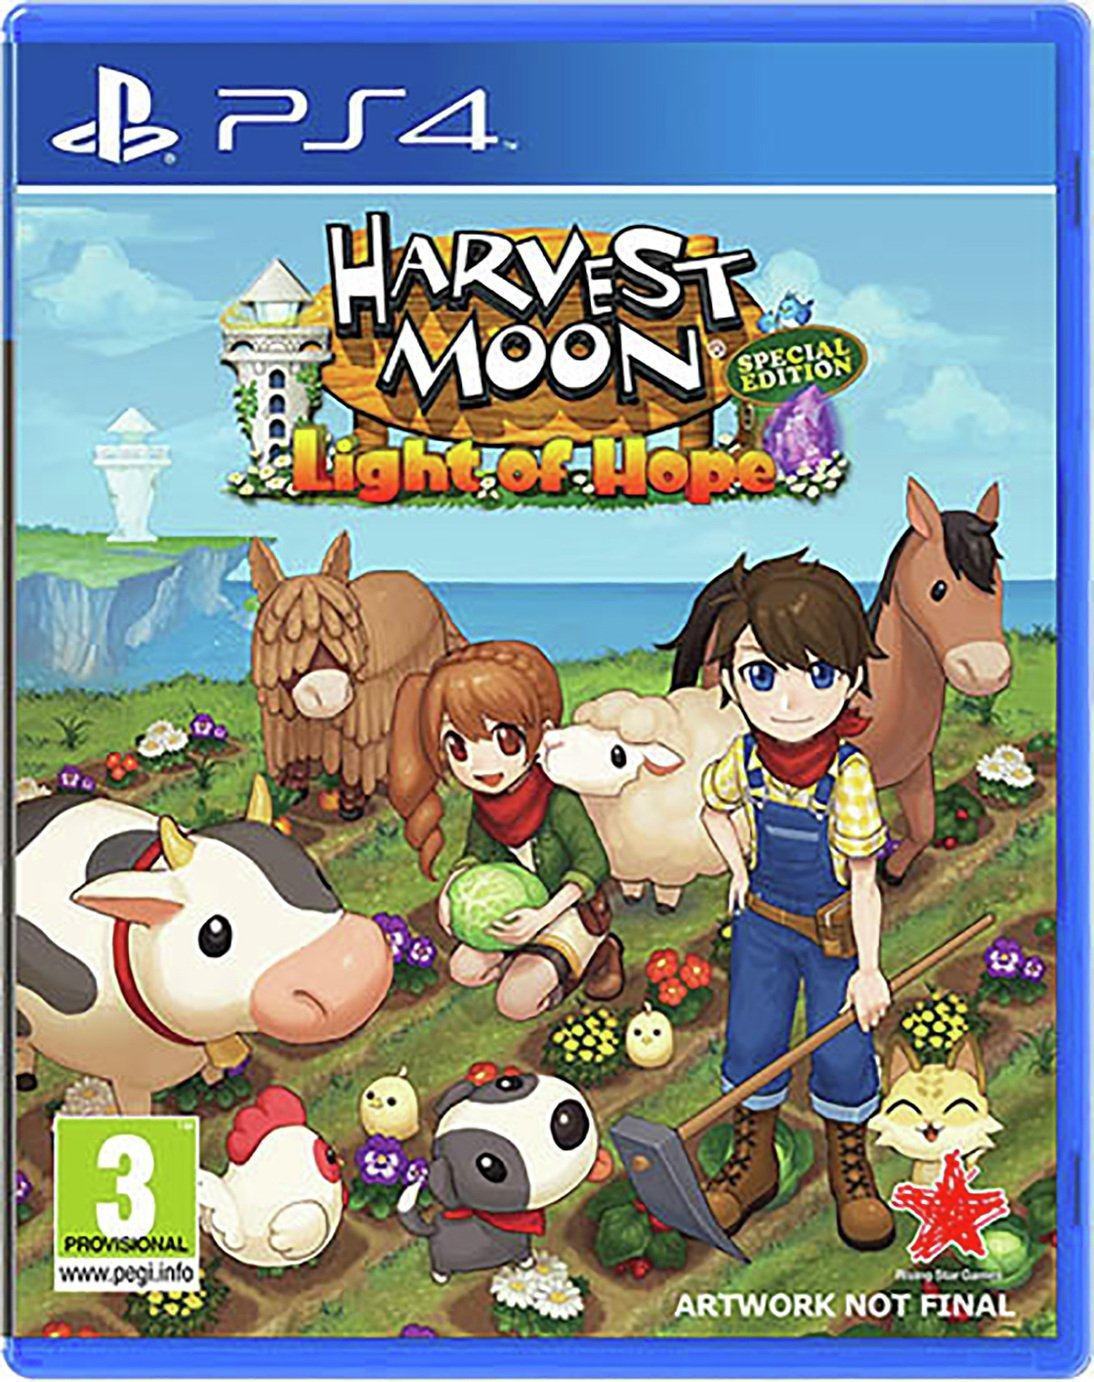 Harvest Moon: Light of Hope Complete Edn PS4 Pre-Order Game